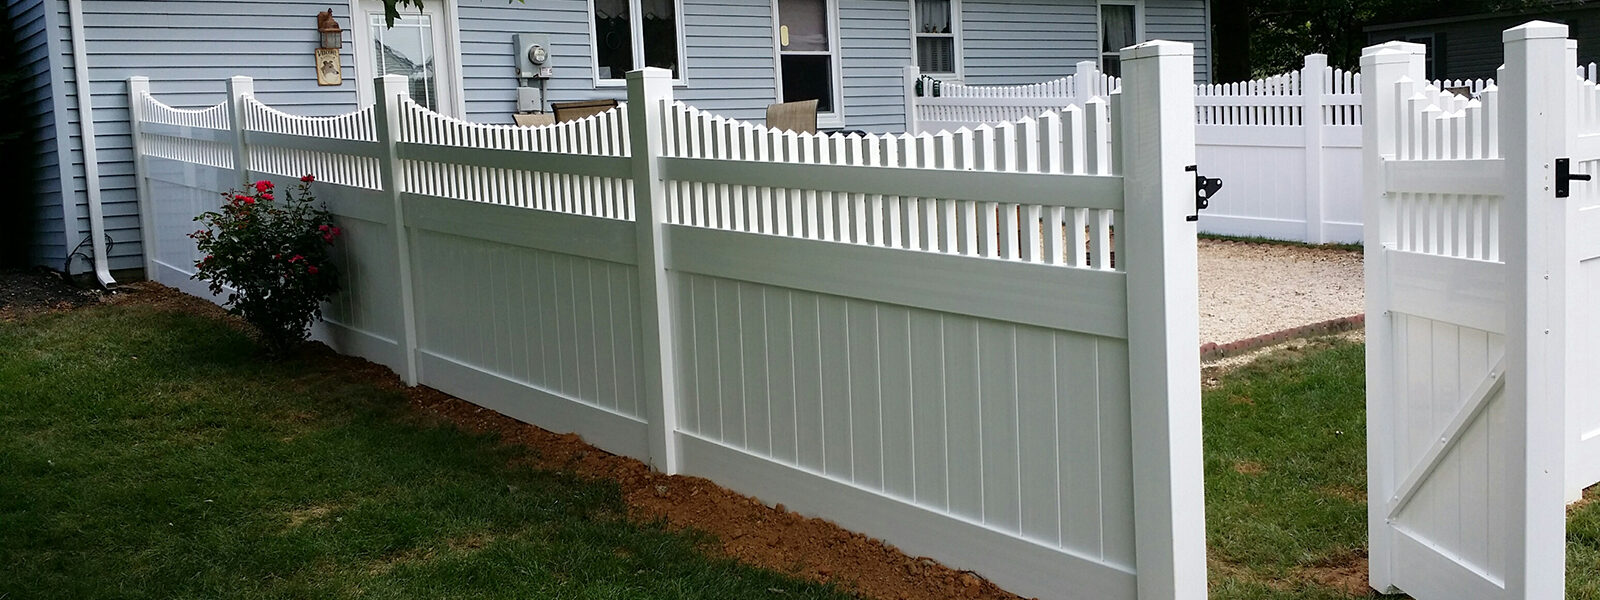 vinyl privacy fence with spindle tops and gate